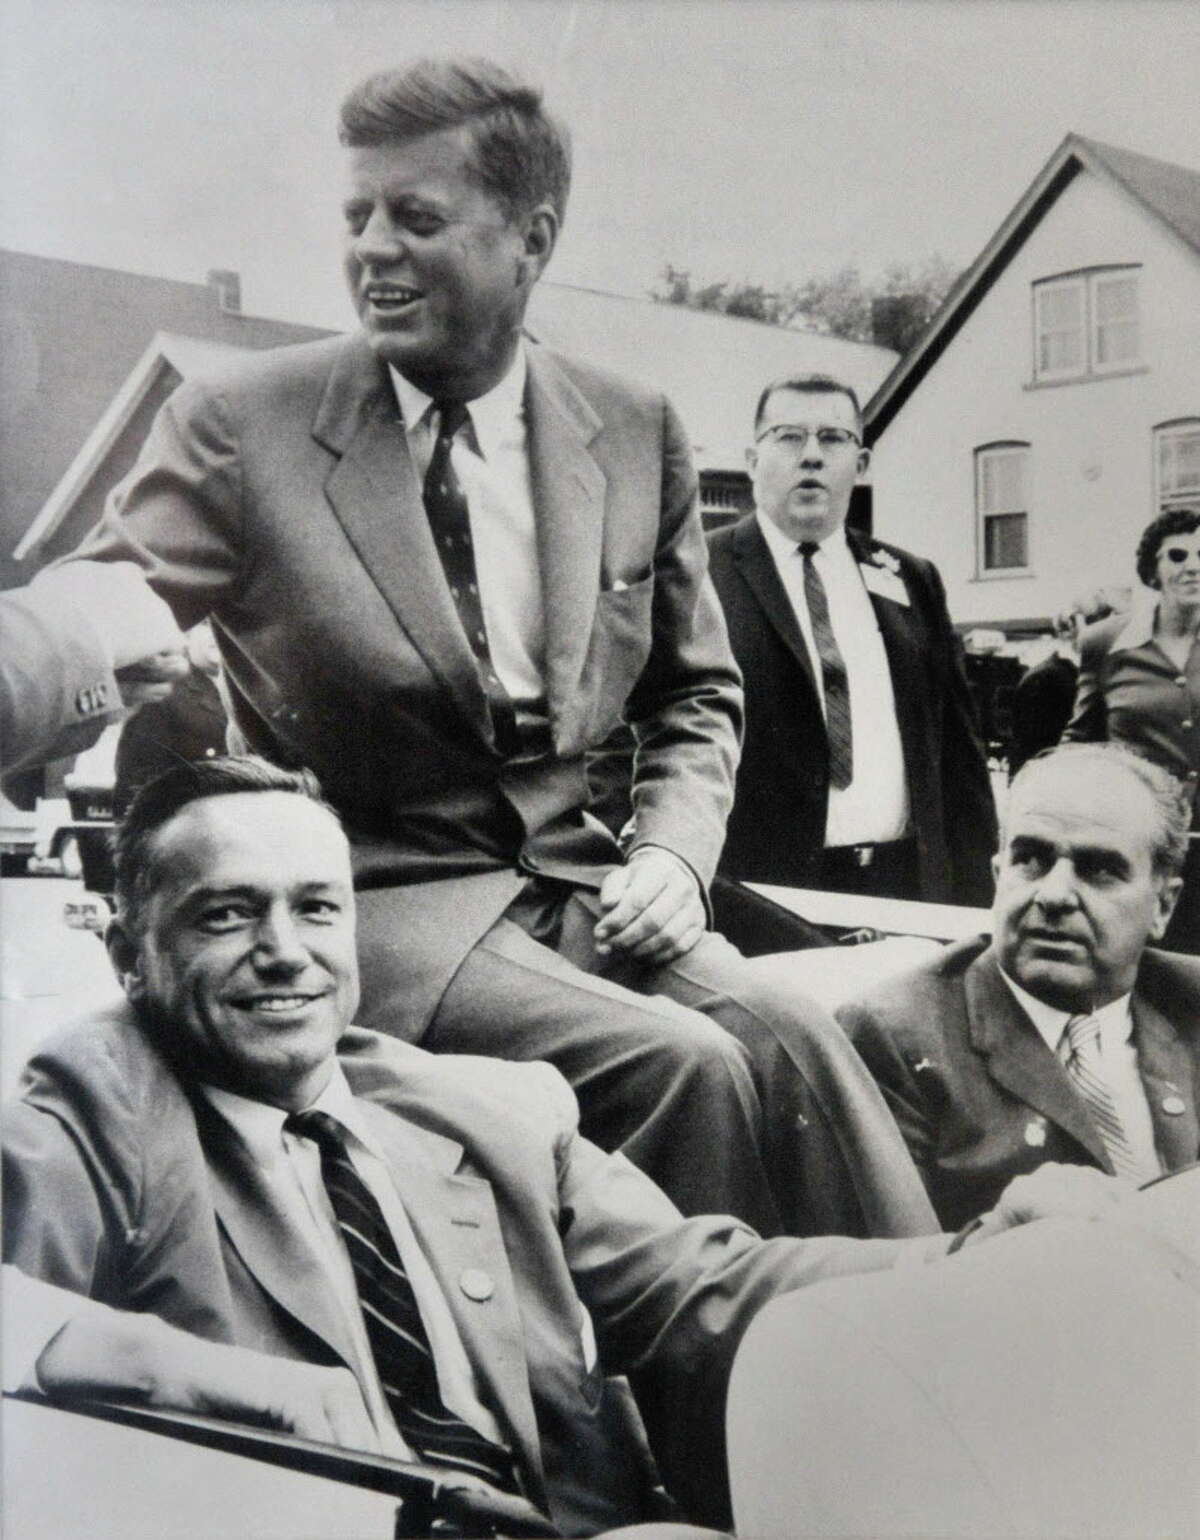 Photograph courtesy of Mayor Brian Stratton: Undated B&W photo of then US Congressman Sam Stratton (lower left) riding in a motorcade with John F. Kennedy during a campaign stop in Schenectady. Others in photograph are unidentified. (for Times Union story)